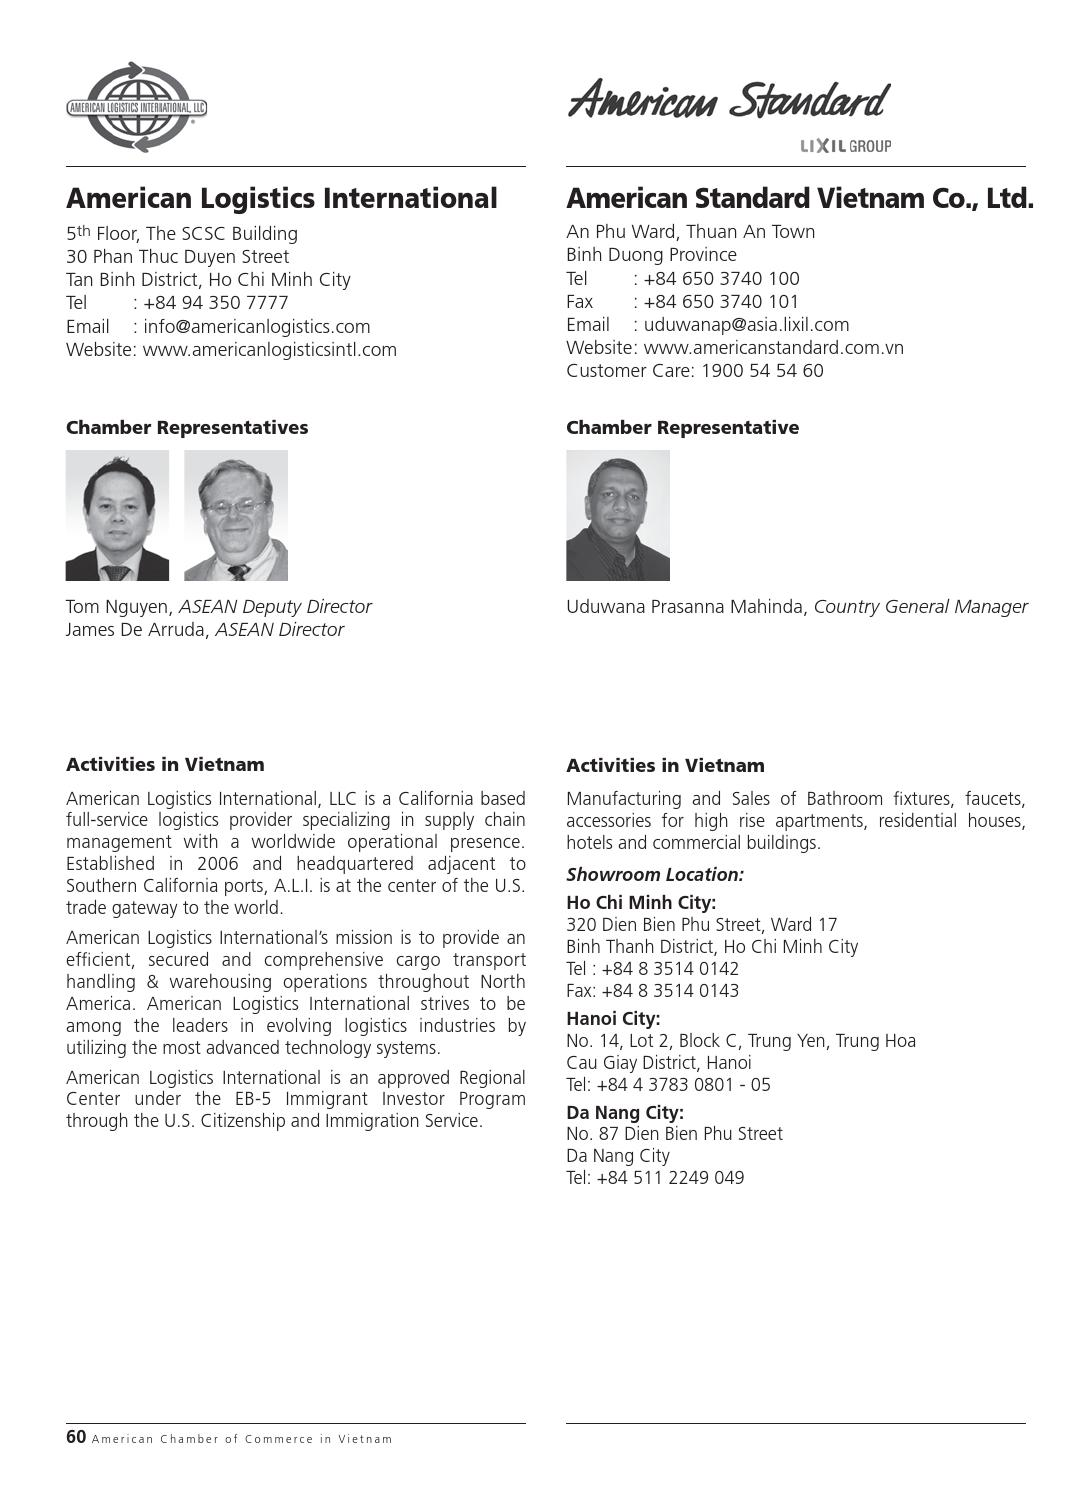 Amcham Membership Directory 2013 By Minh Le Issuu